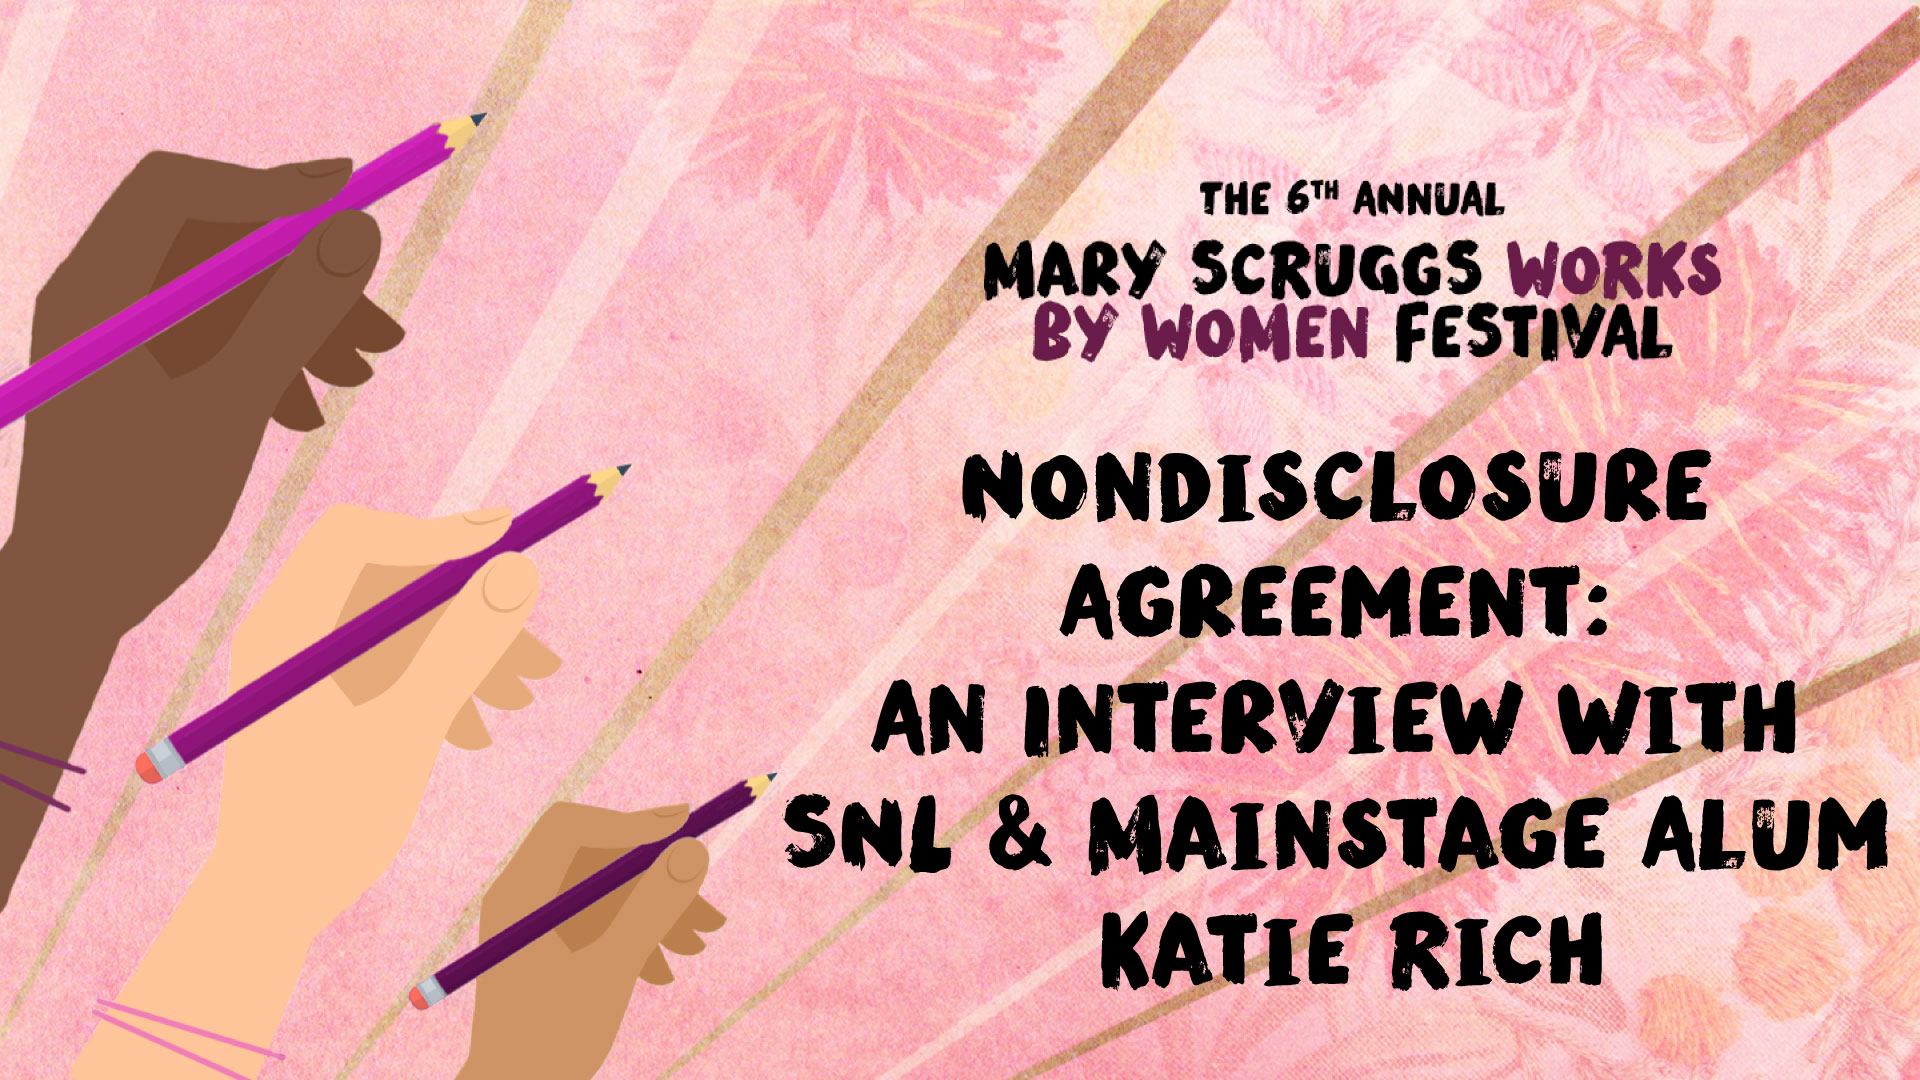 Nondisclosure Agreement: An Interview with SNL & Mainstage Alum Katie Rich